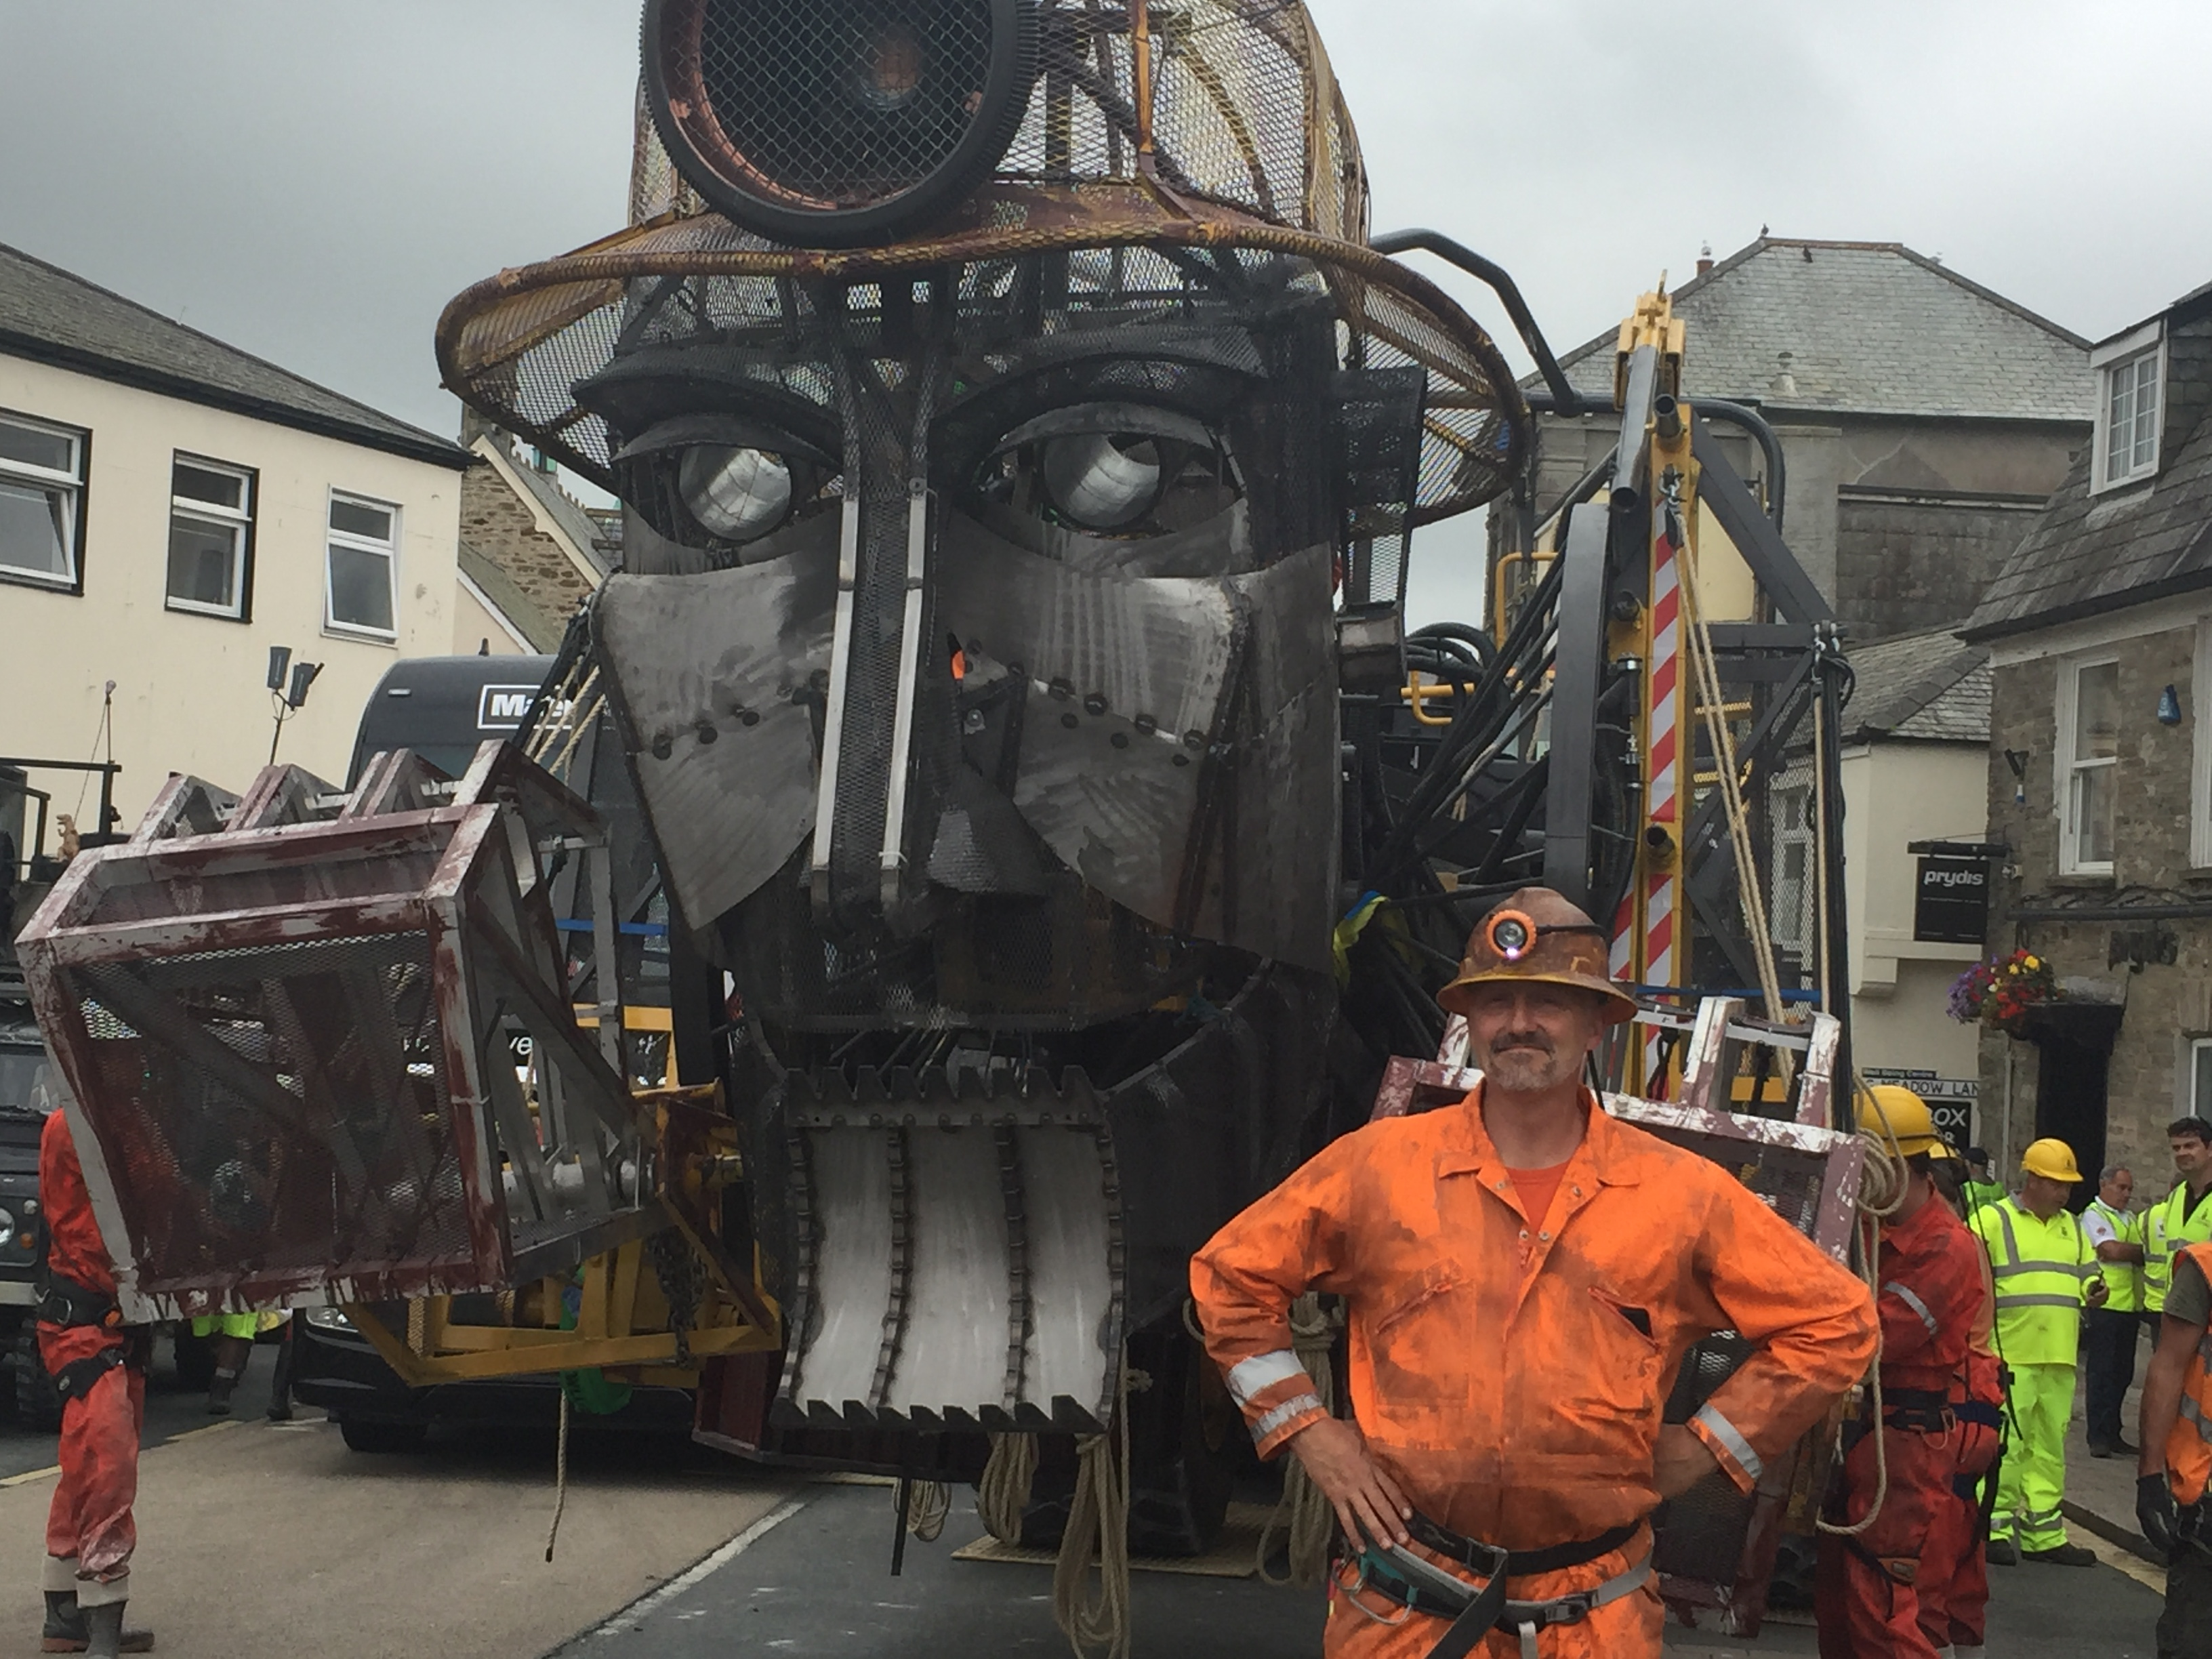 Will with man engine